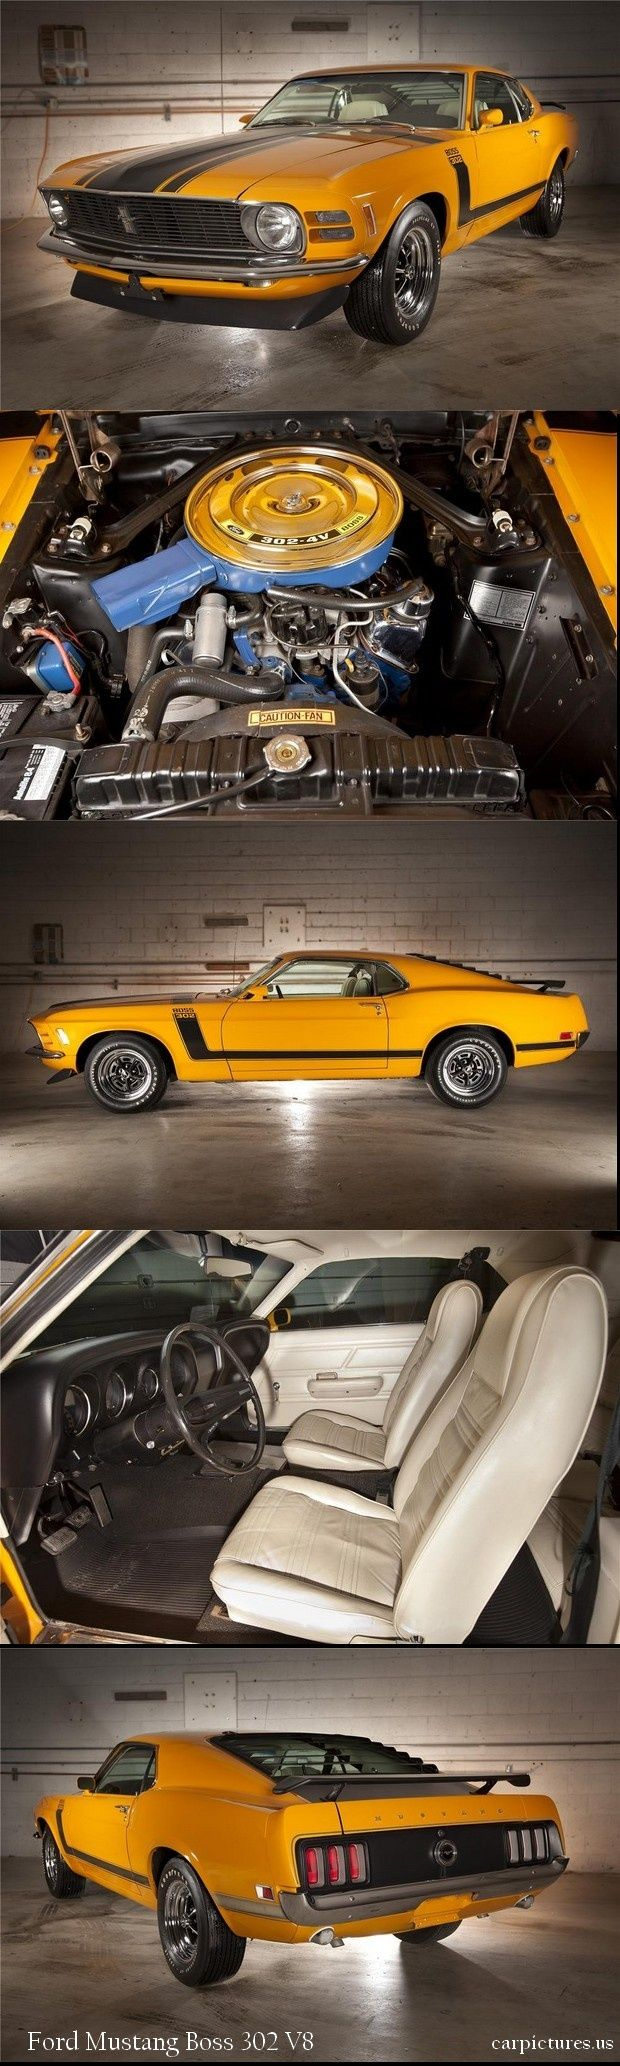 1970 ford mustang boss 302 fastback but with black leather seats